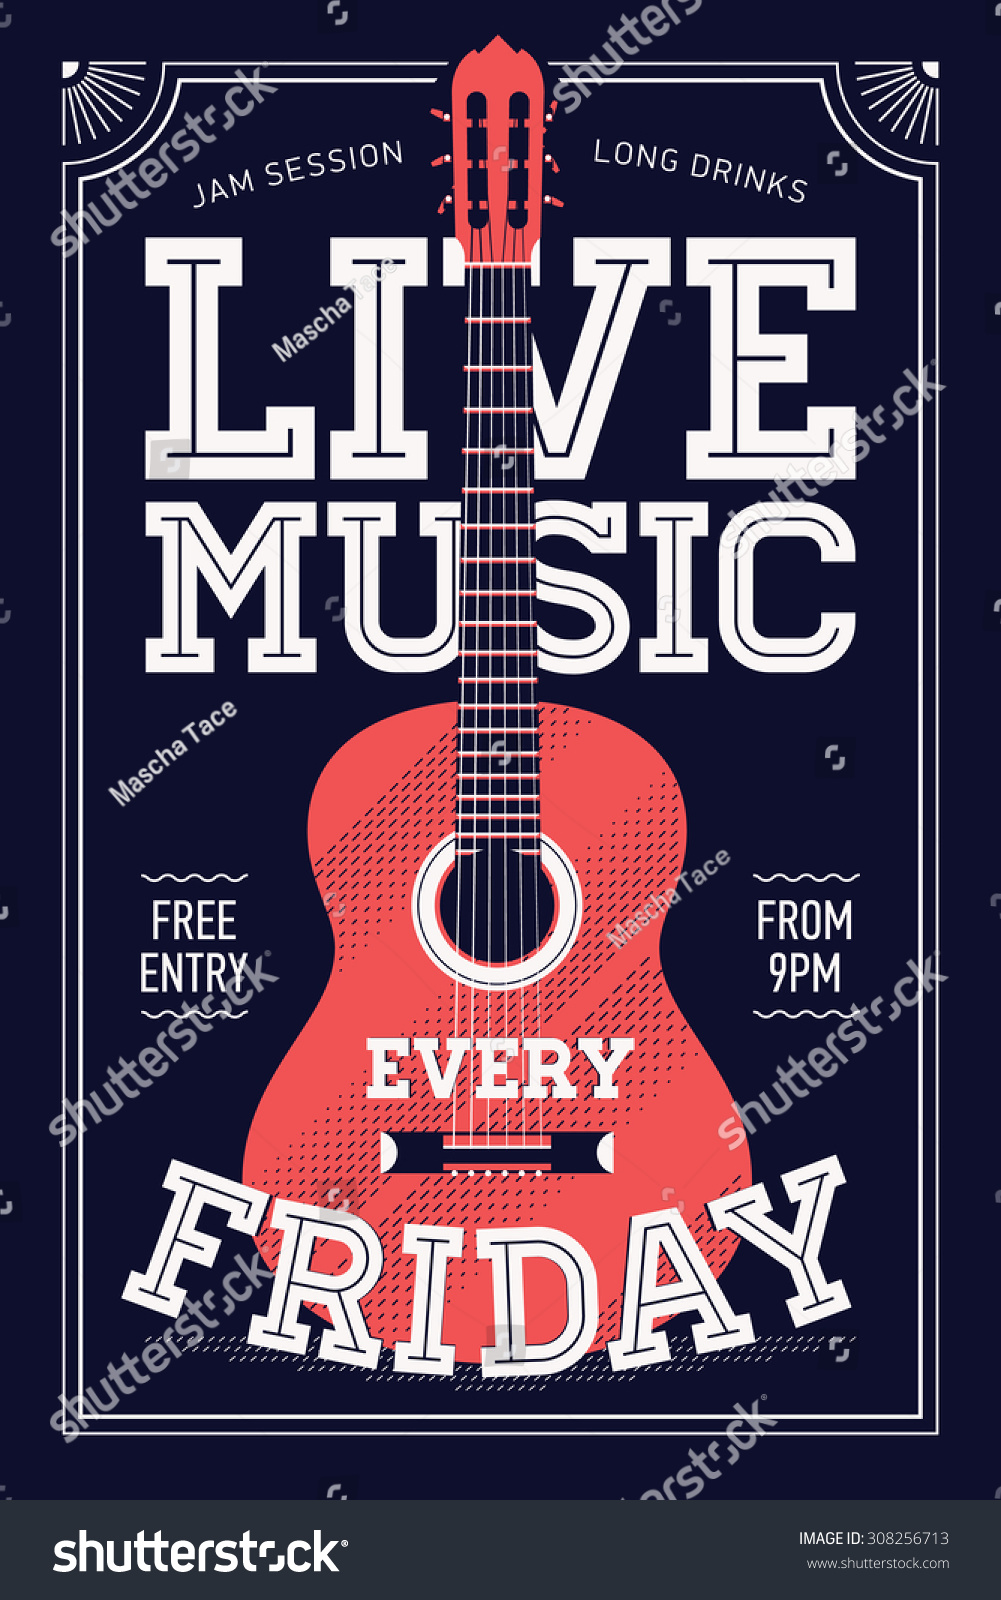 Beautiful Live Music Every Friday Vector Stock Vector (Royalty Free